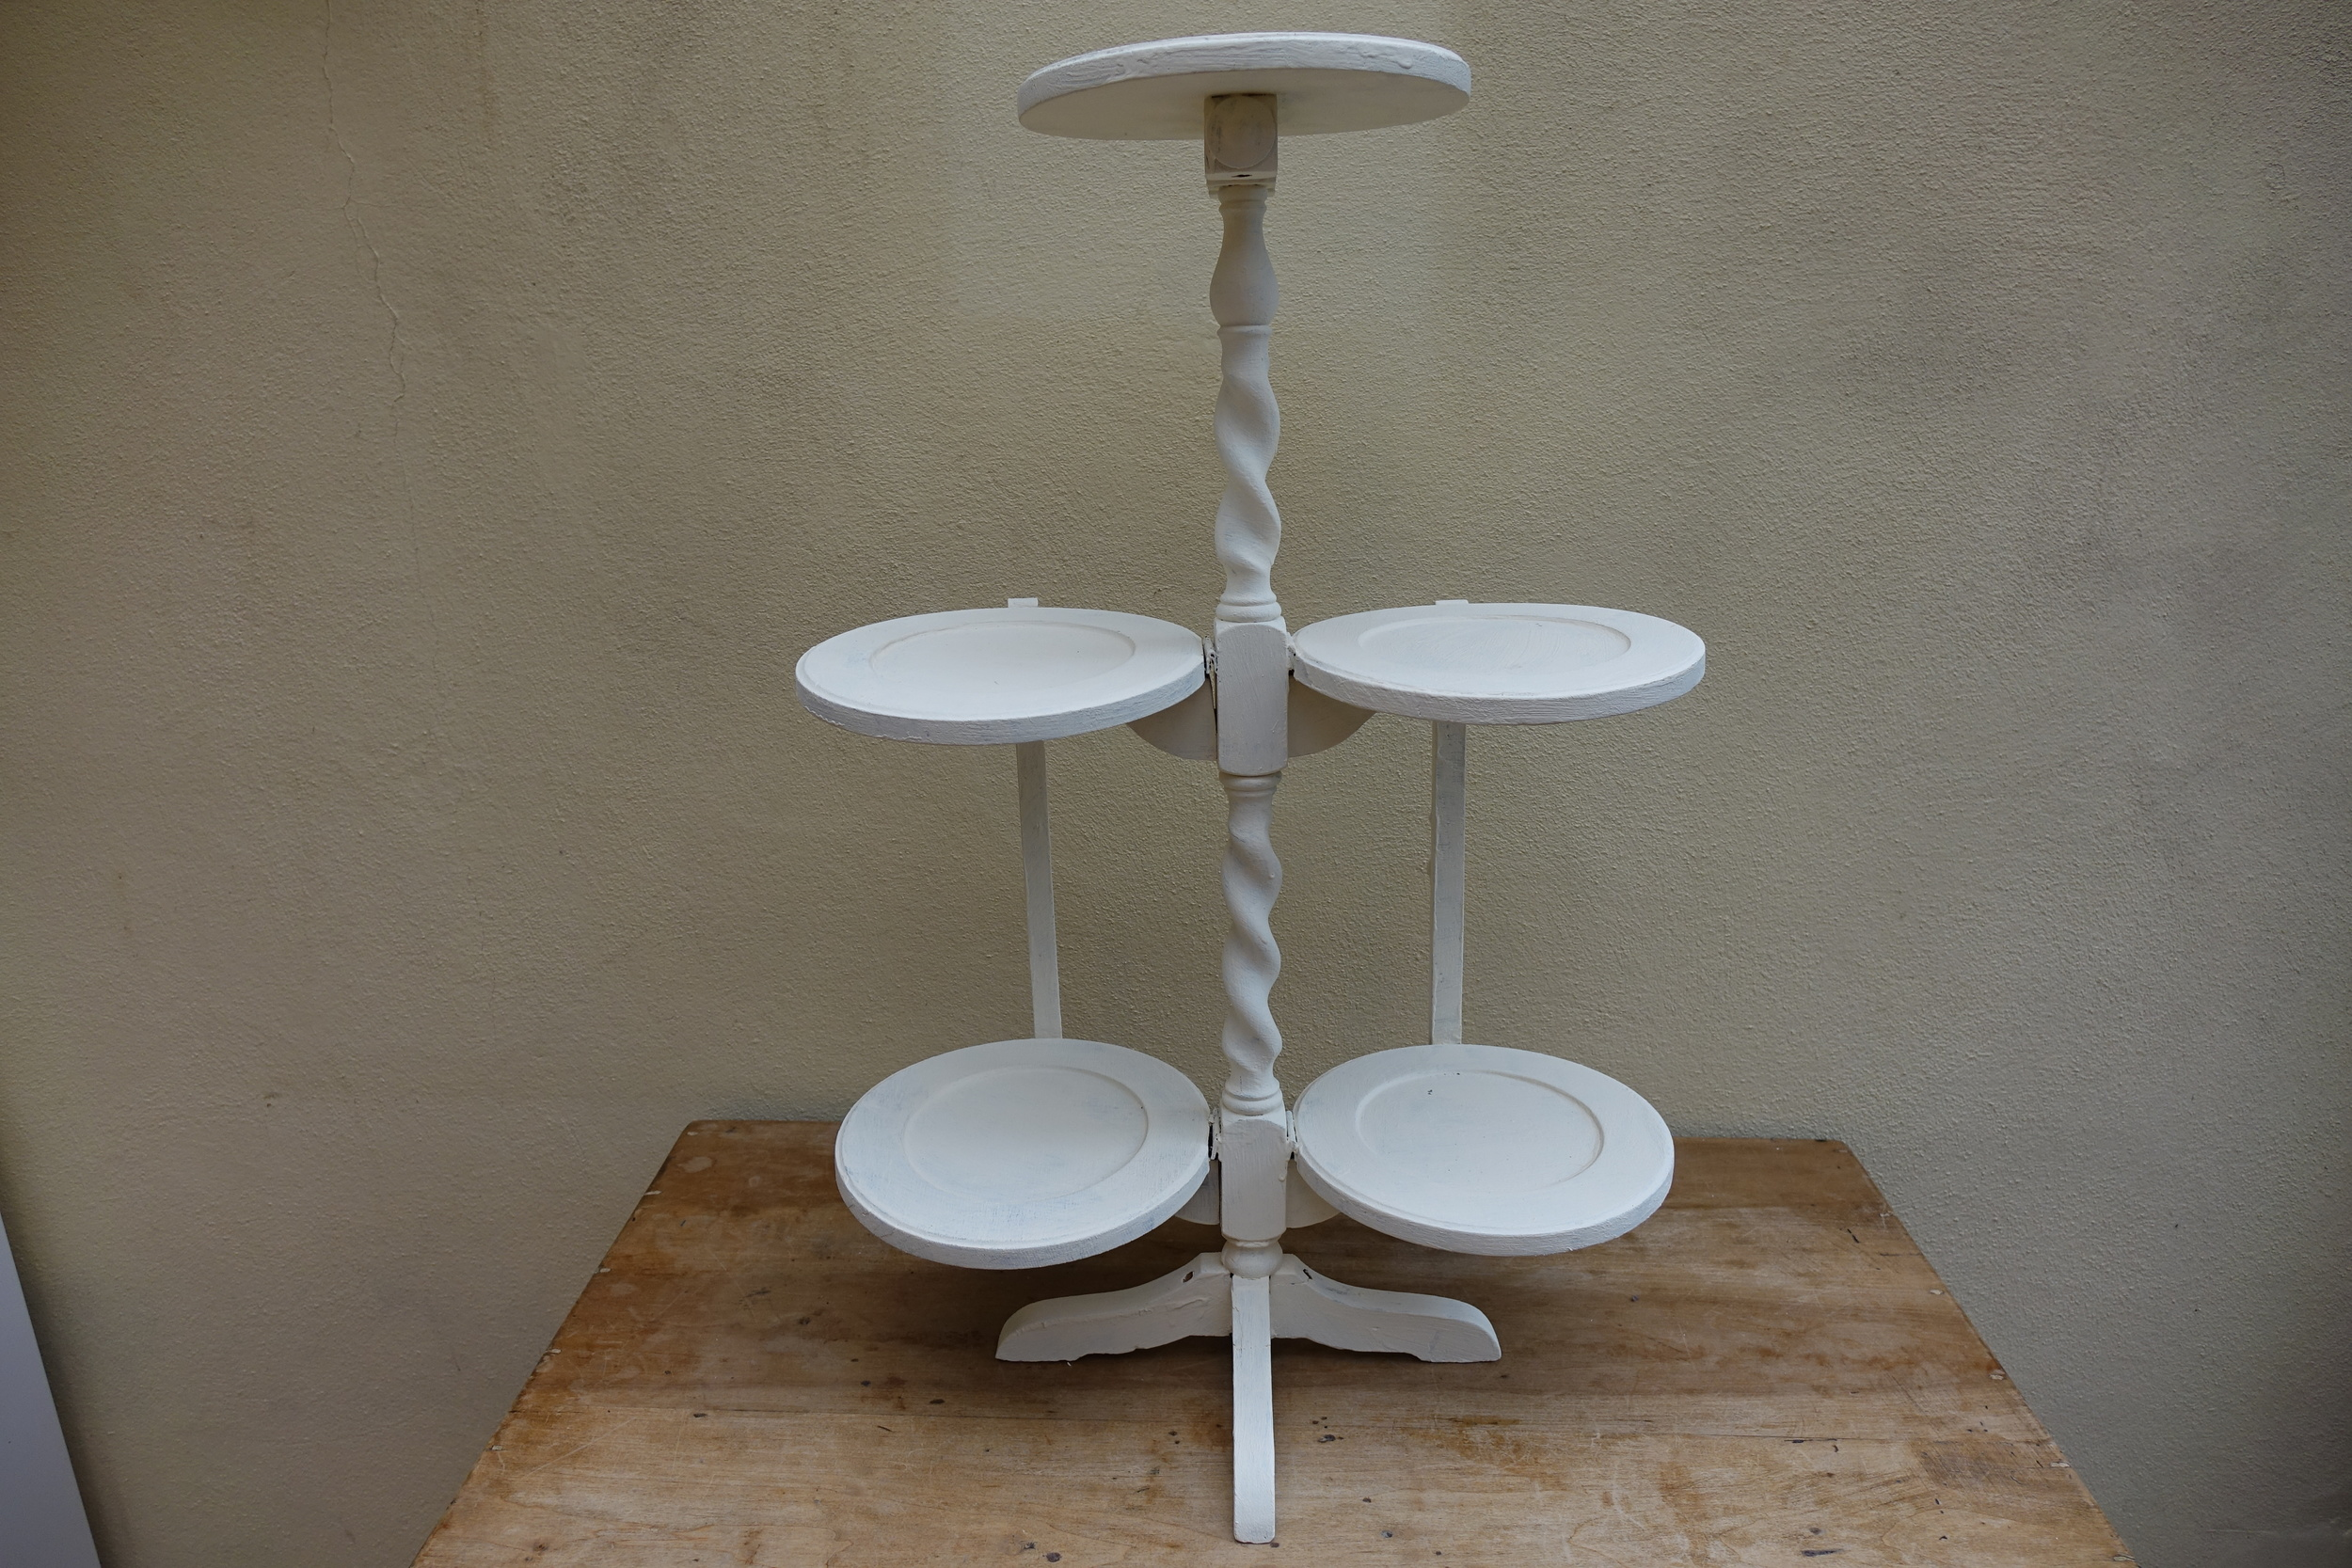 Vintage Tiered Stand £7.50